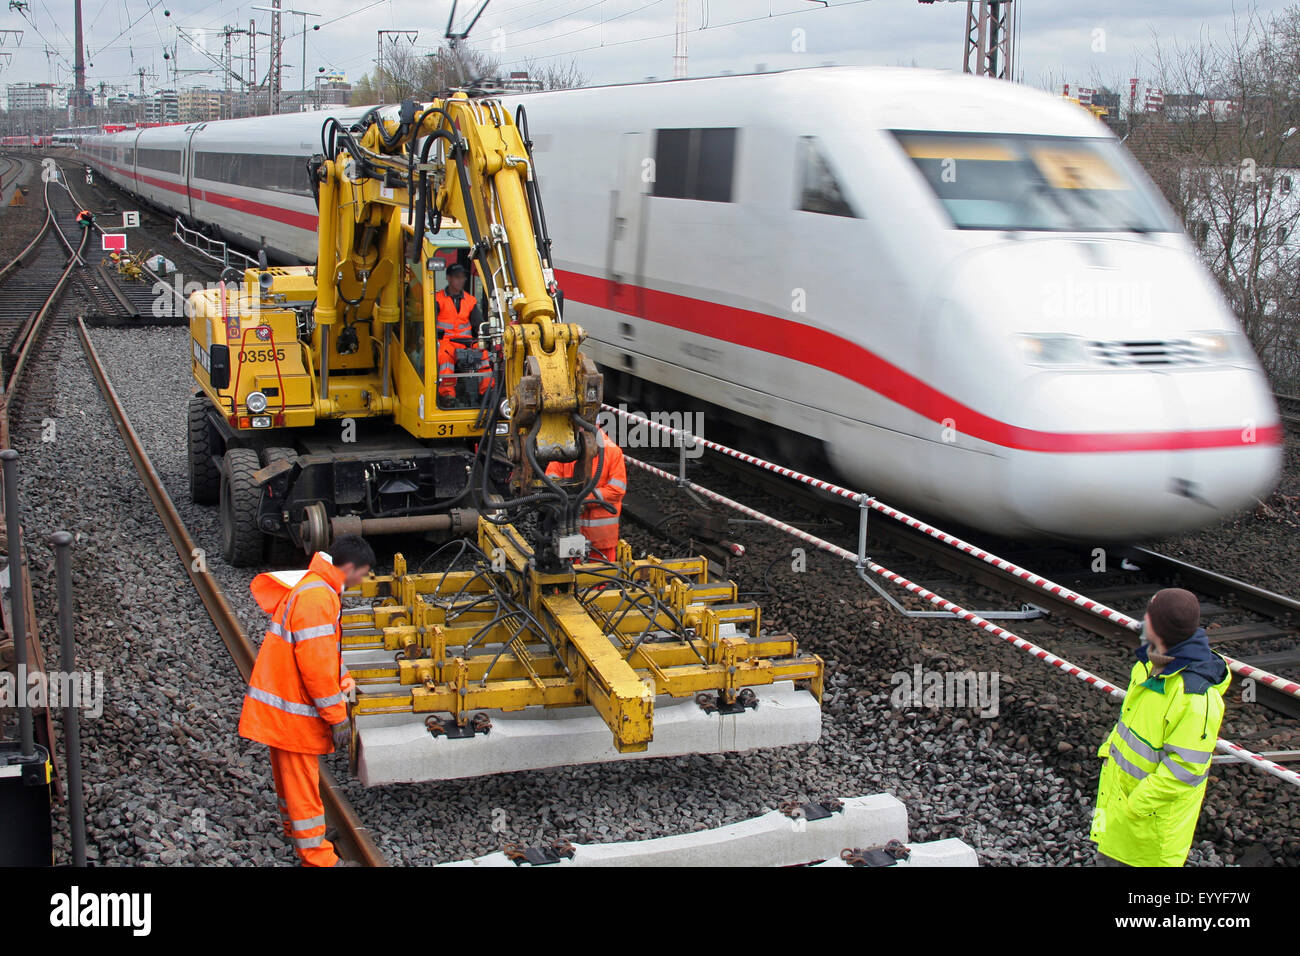 track works and Intercity-Express, Germany - Stock Image